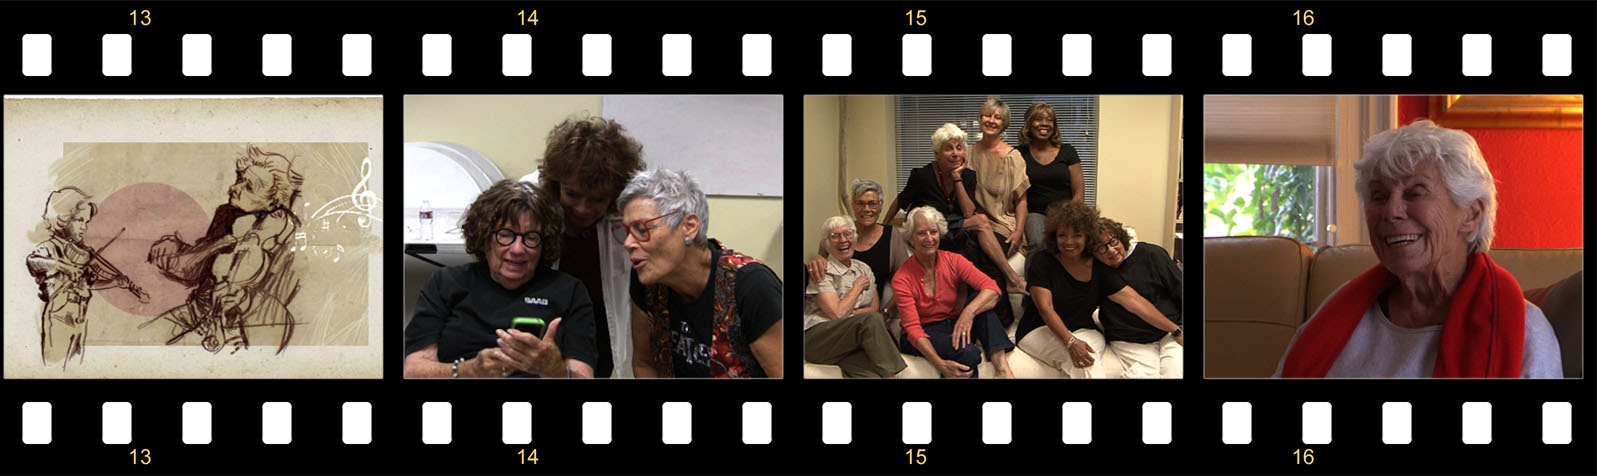 A Beautiful Equation - A Beautiful Equation follows eight elder women as they rehearse for an unlikely stage presentation about two great 20th century physicists – Albert Einstein and Niels Bohr.